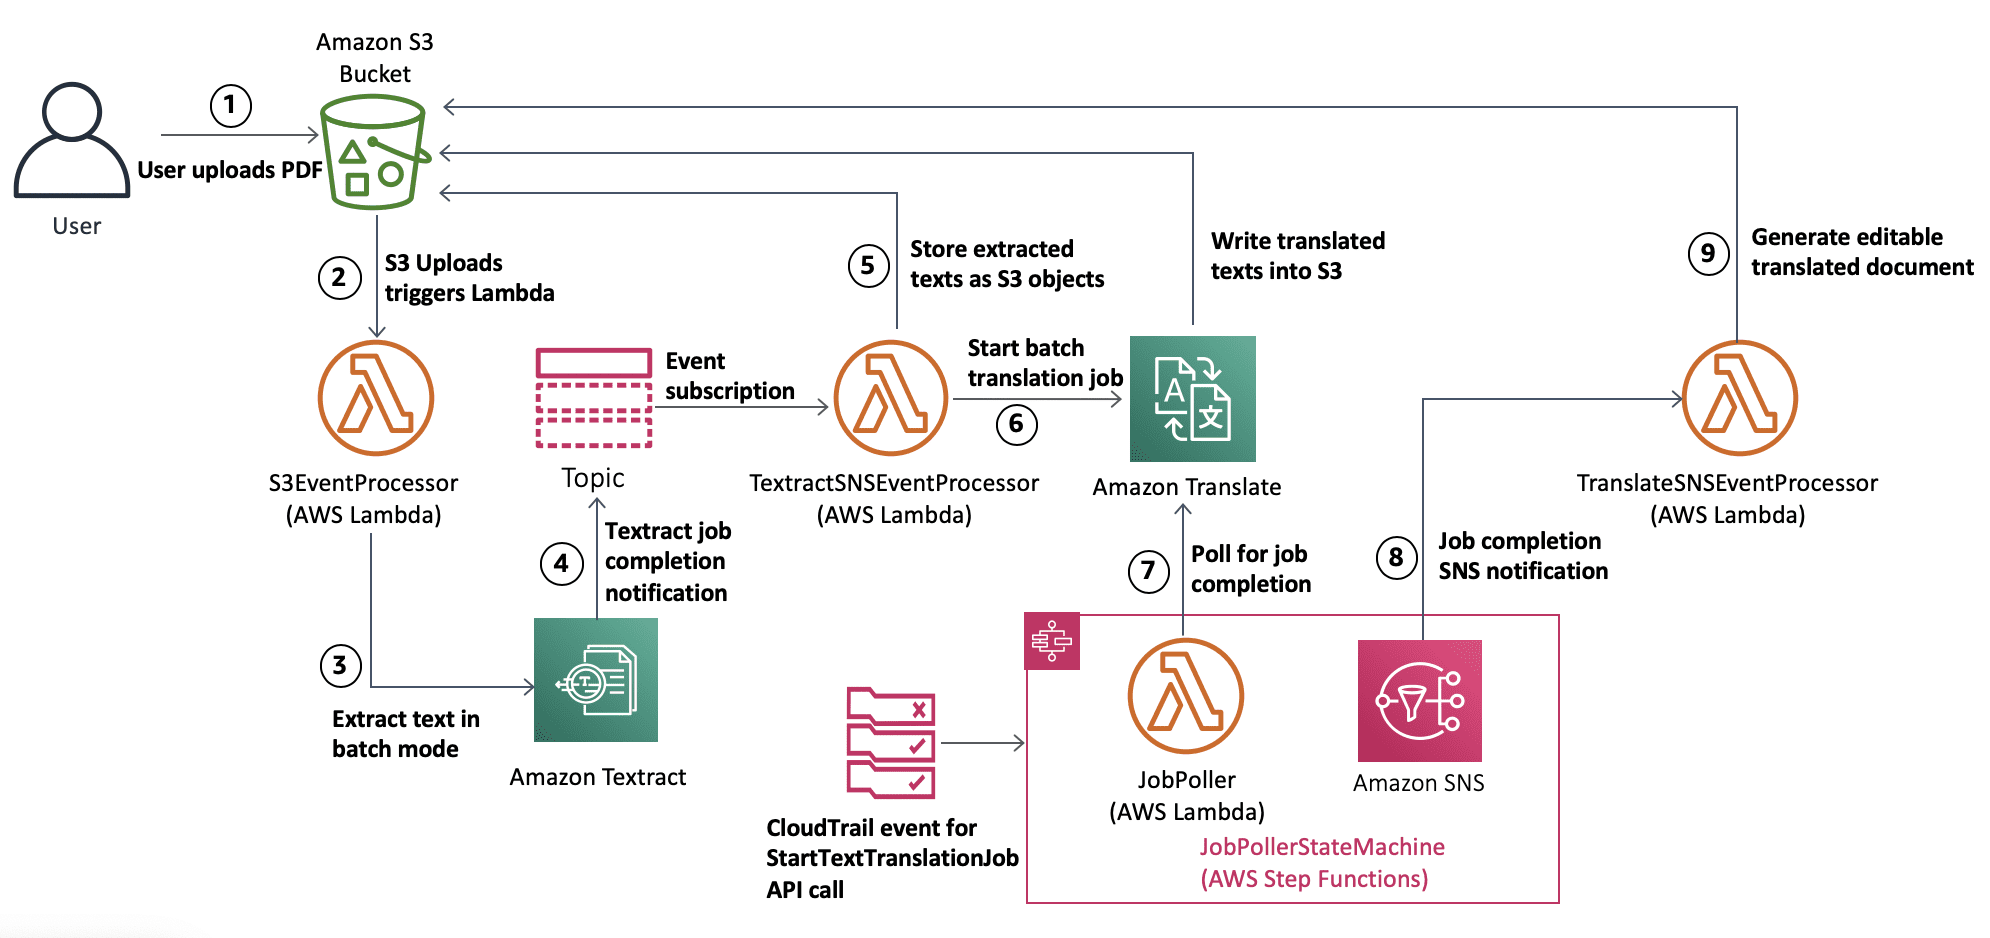 Architecture Diagram showing the workflow how uploading the PDF document to S3 bucket triggers the process of extracting text using Amazon textract and then translating it using Amazon Translate.